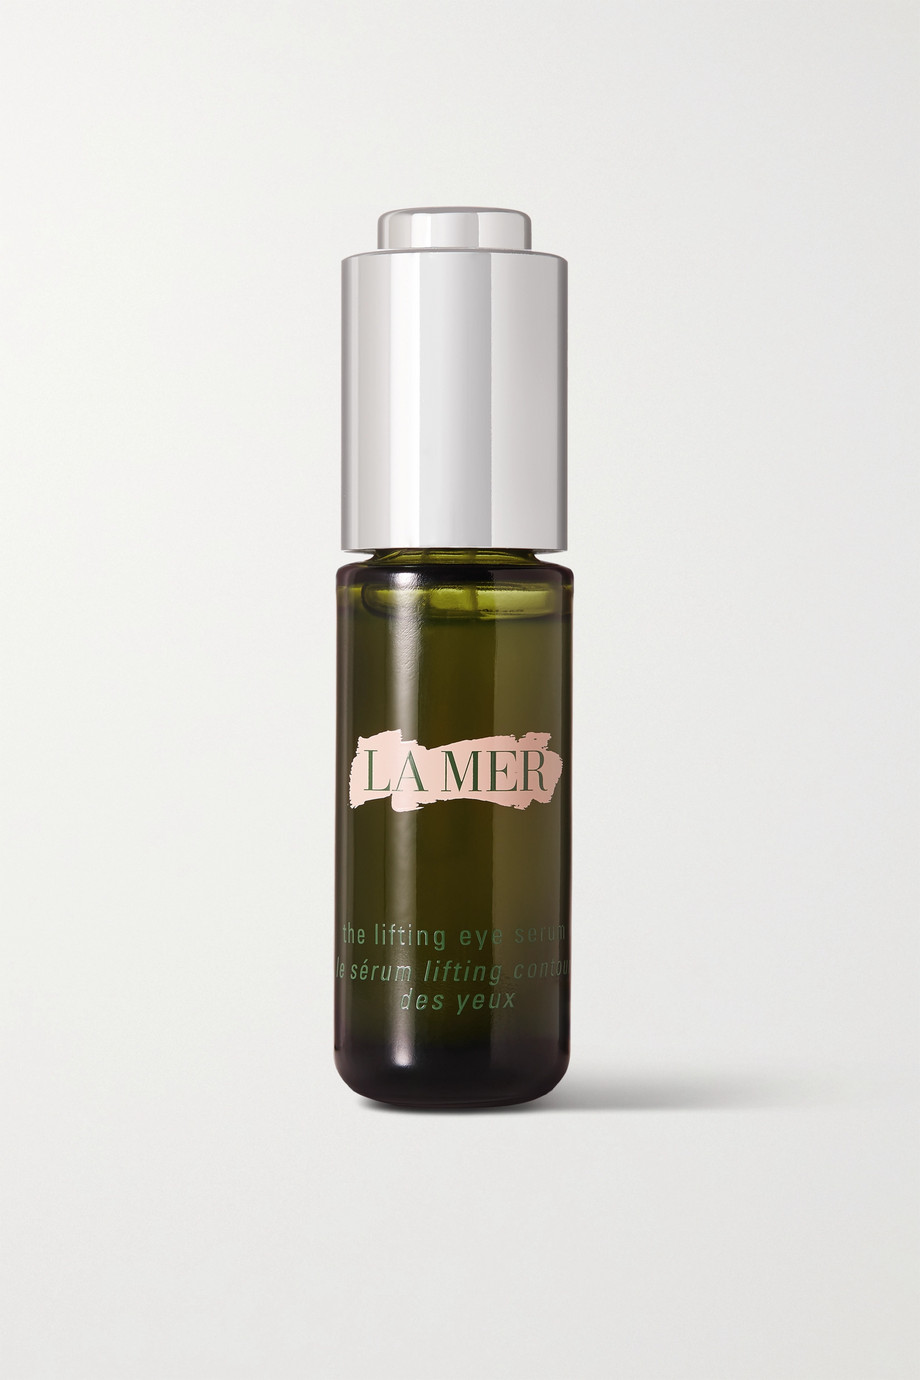 La Mer The Lifting Eye Serum, 15ml